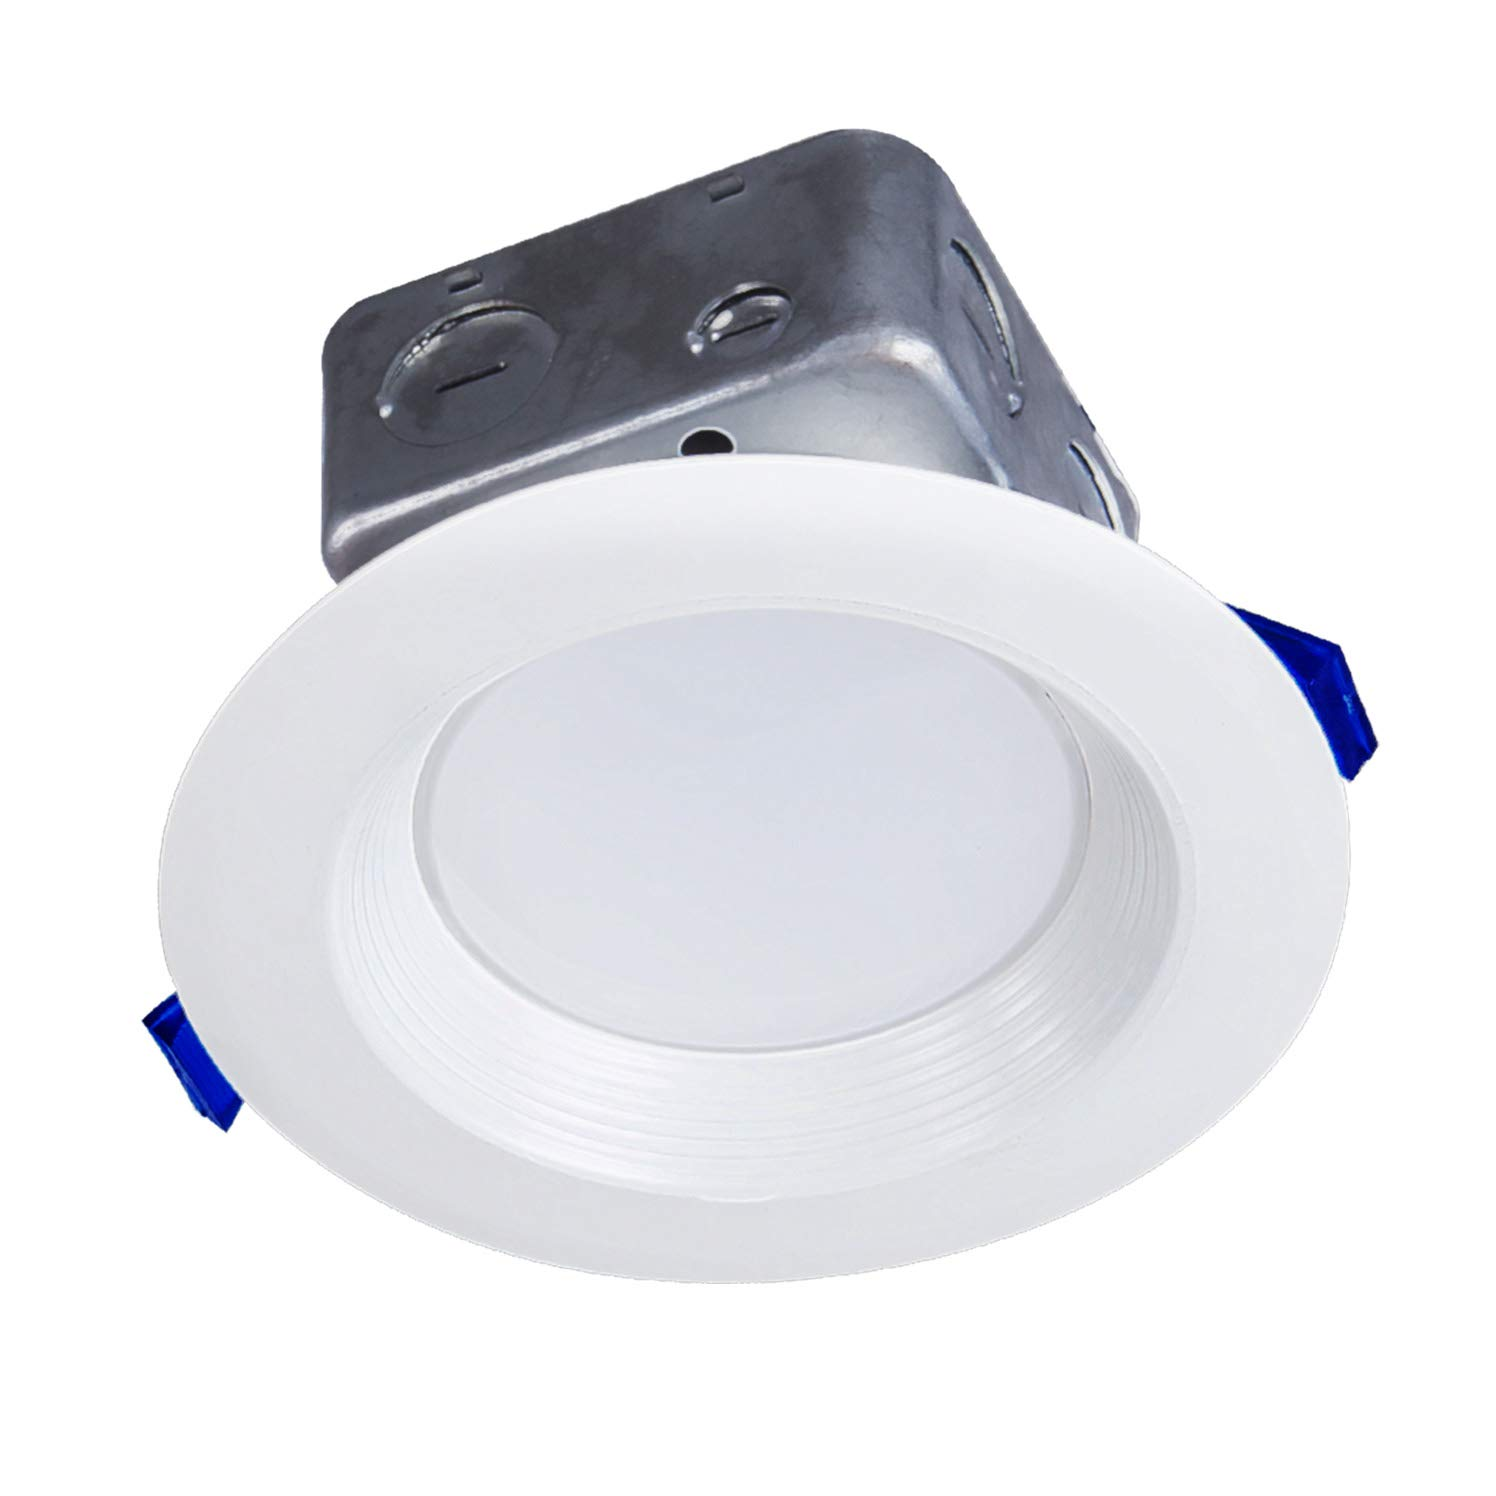 OSTWIN 4 Inch LED Recessed Ceiling Light Fixture, Dimmable, Downlighter Junction Box, IC Rated, 10W (50 Watt Replacement) 3000K (Warm Light), 725Lm, No Can Needed, ETL Listed